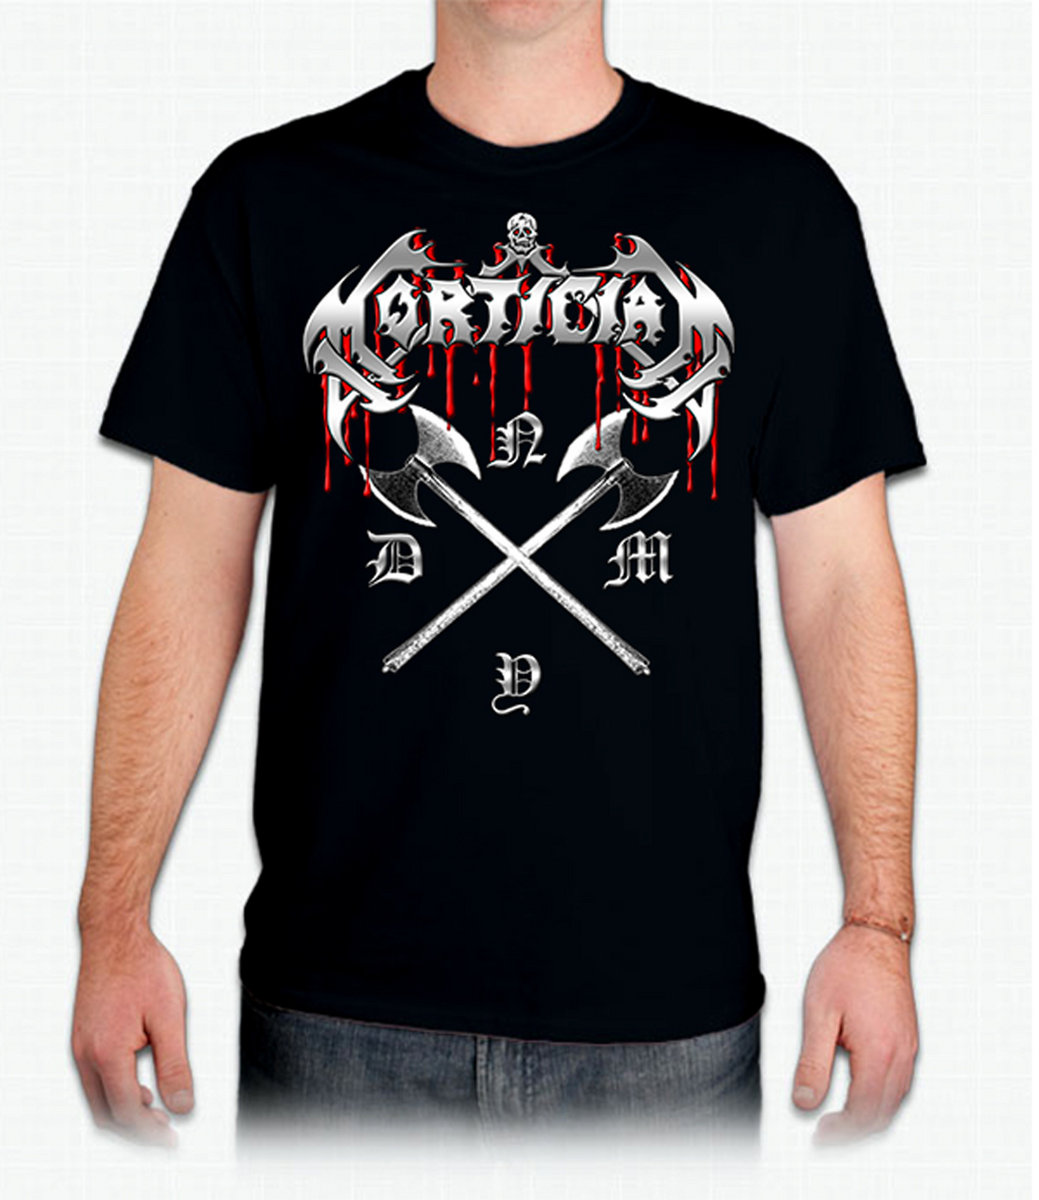 NYDM T Shirt From Mortician